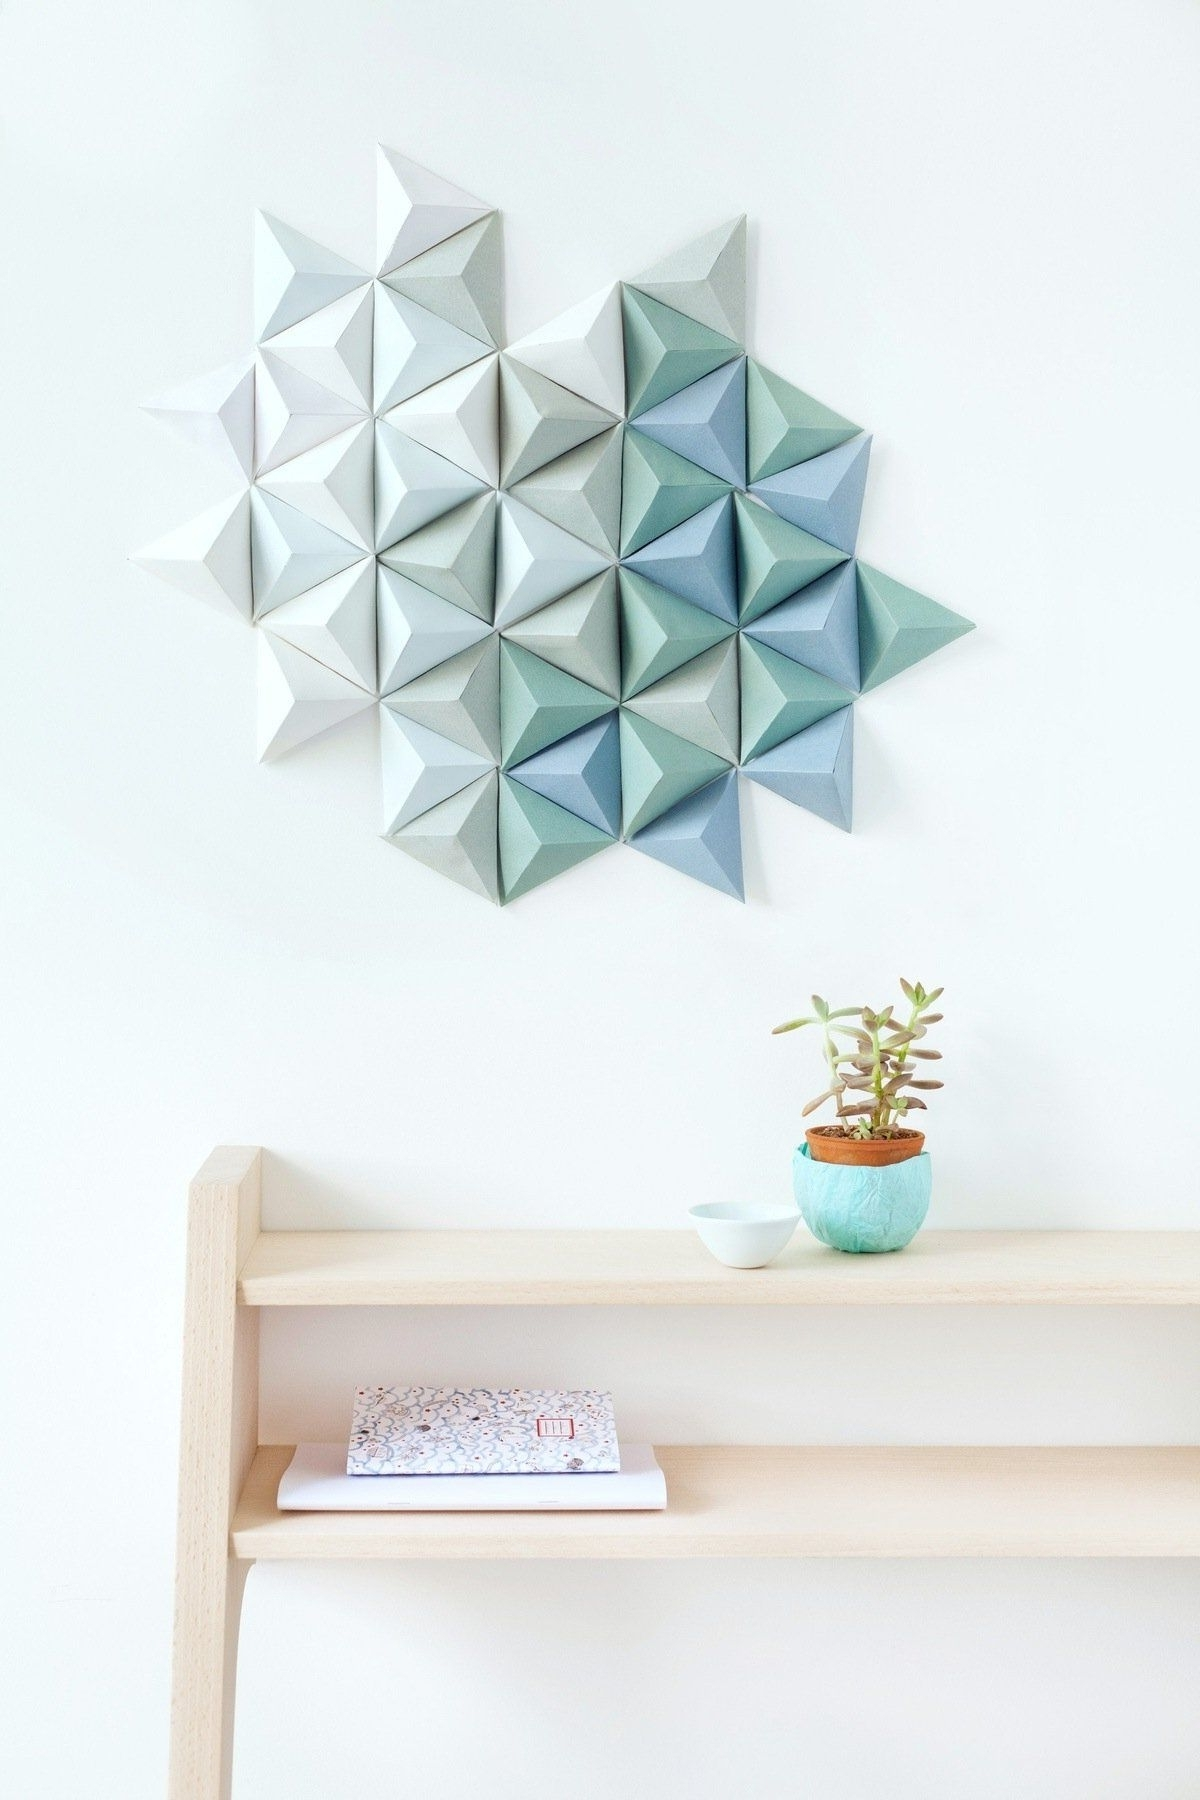 Recent Try It Today: Diy, 3D Art Ideas For Bold, Textured Walls! (View 11 of 15)